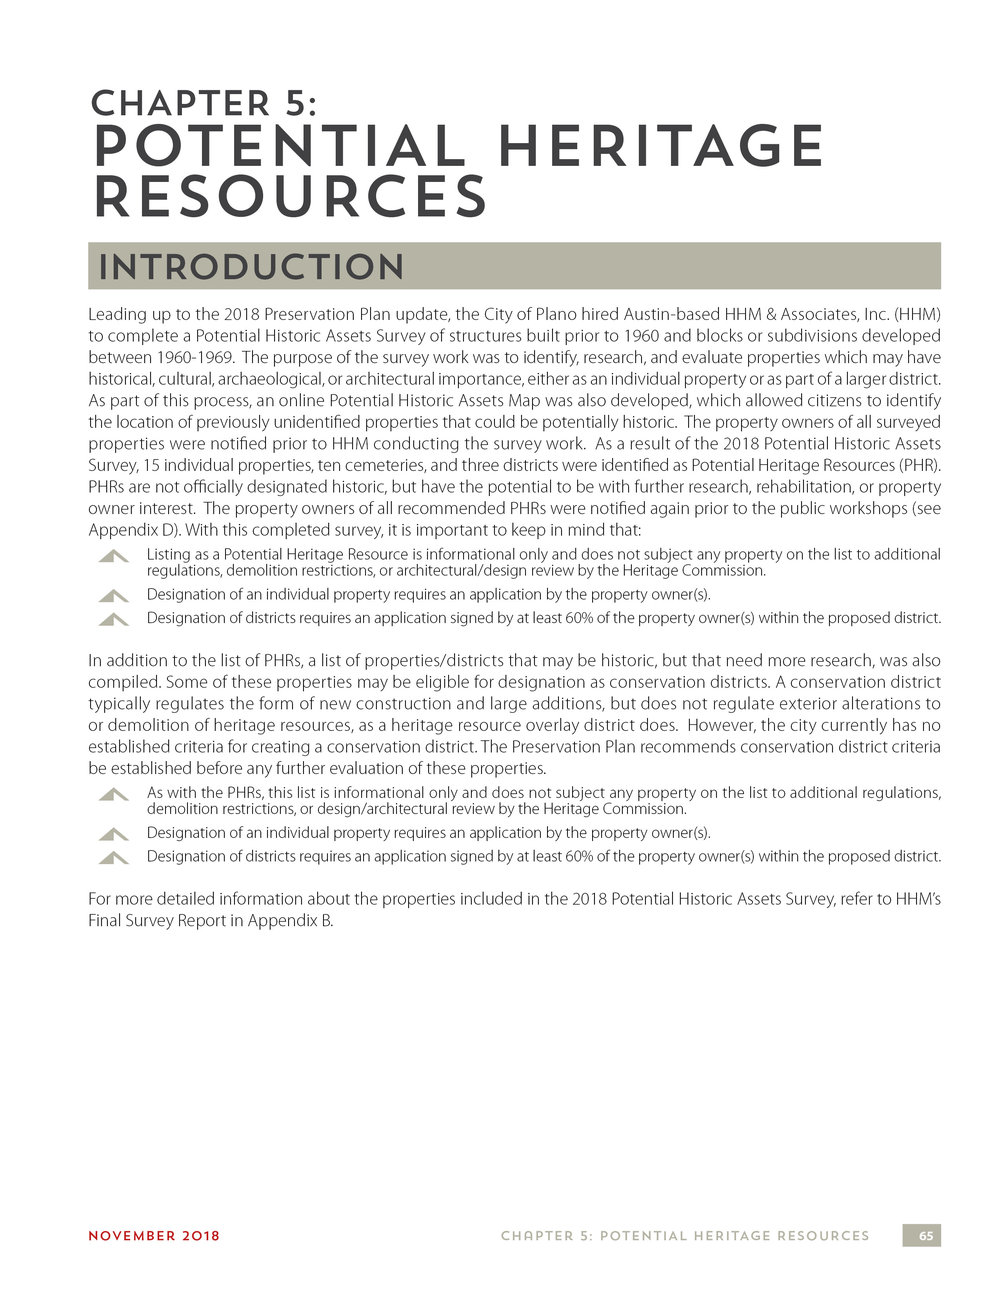 05 - Potential Heritage Resources